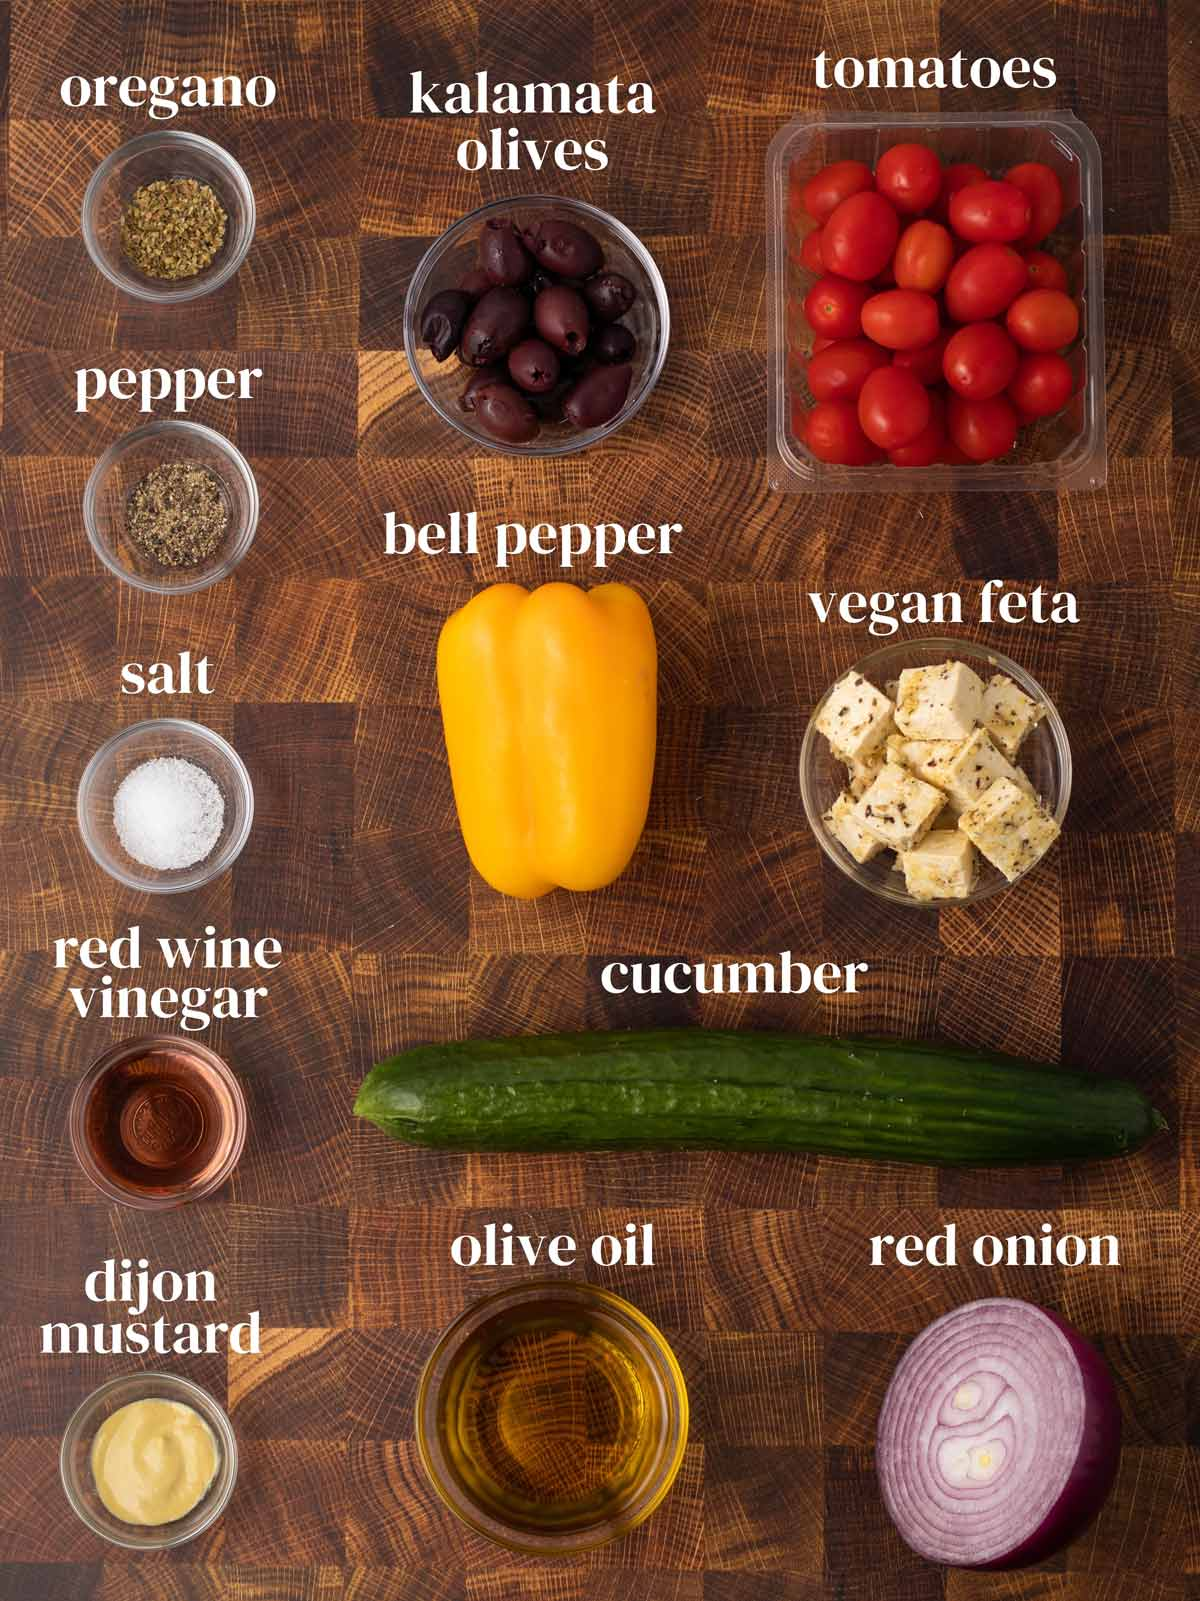 Ingredients for the salad including kalamata olives, tomatoes, oregano, cucumbers, and olive oil.